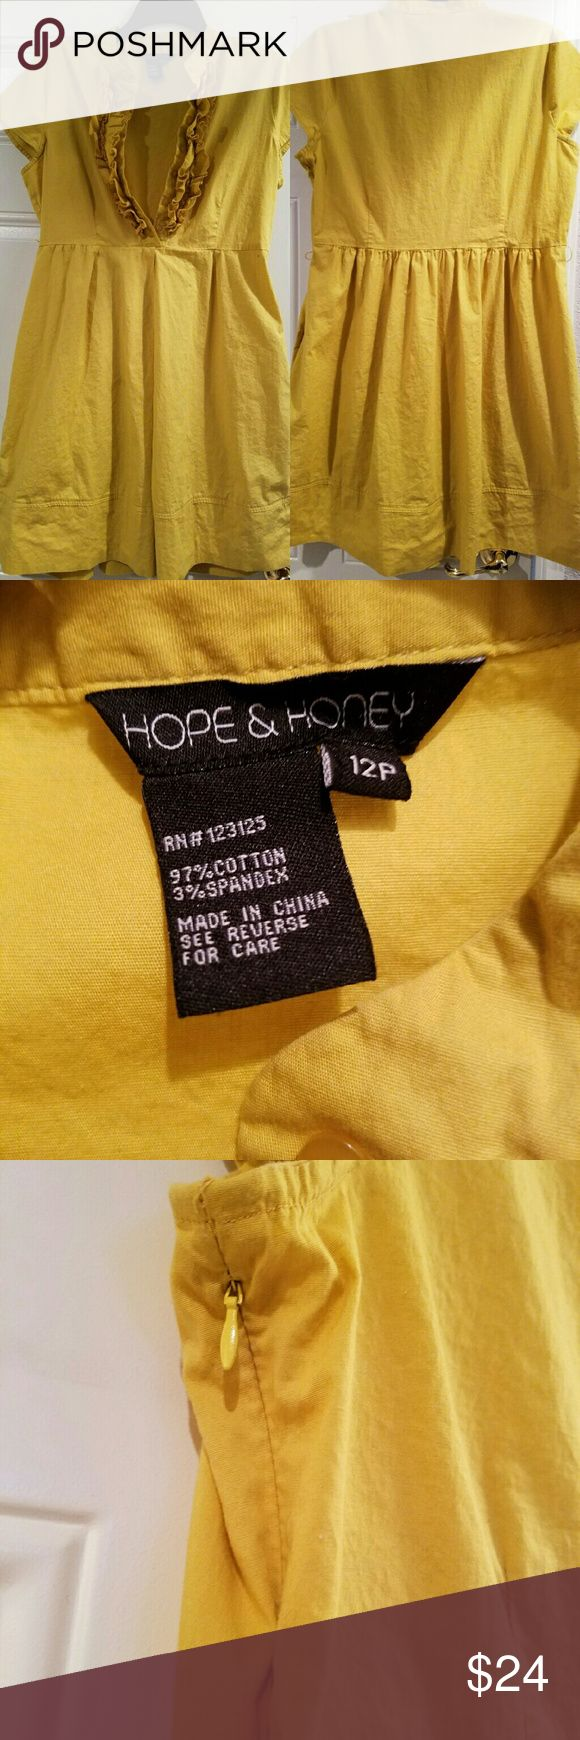 Hope & Honey yellow dress 12 petite ruffle top dress. Meausres 21 inches in lengrh from waist. Buttons in front are functional...gorgeous color of yellow. Zips under left arm. Bundle with black eyelet dress of same size! Hope and Honey Dresses